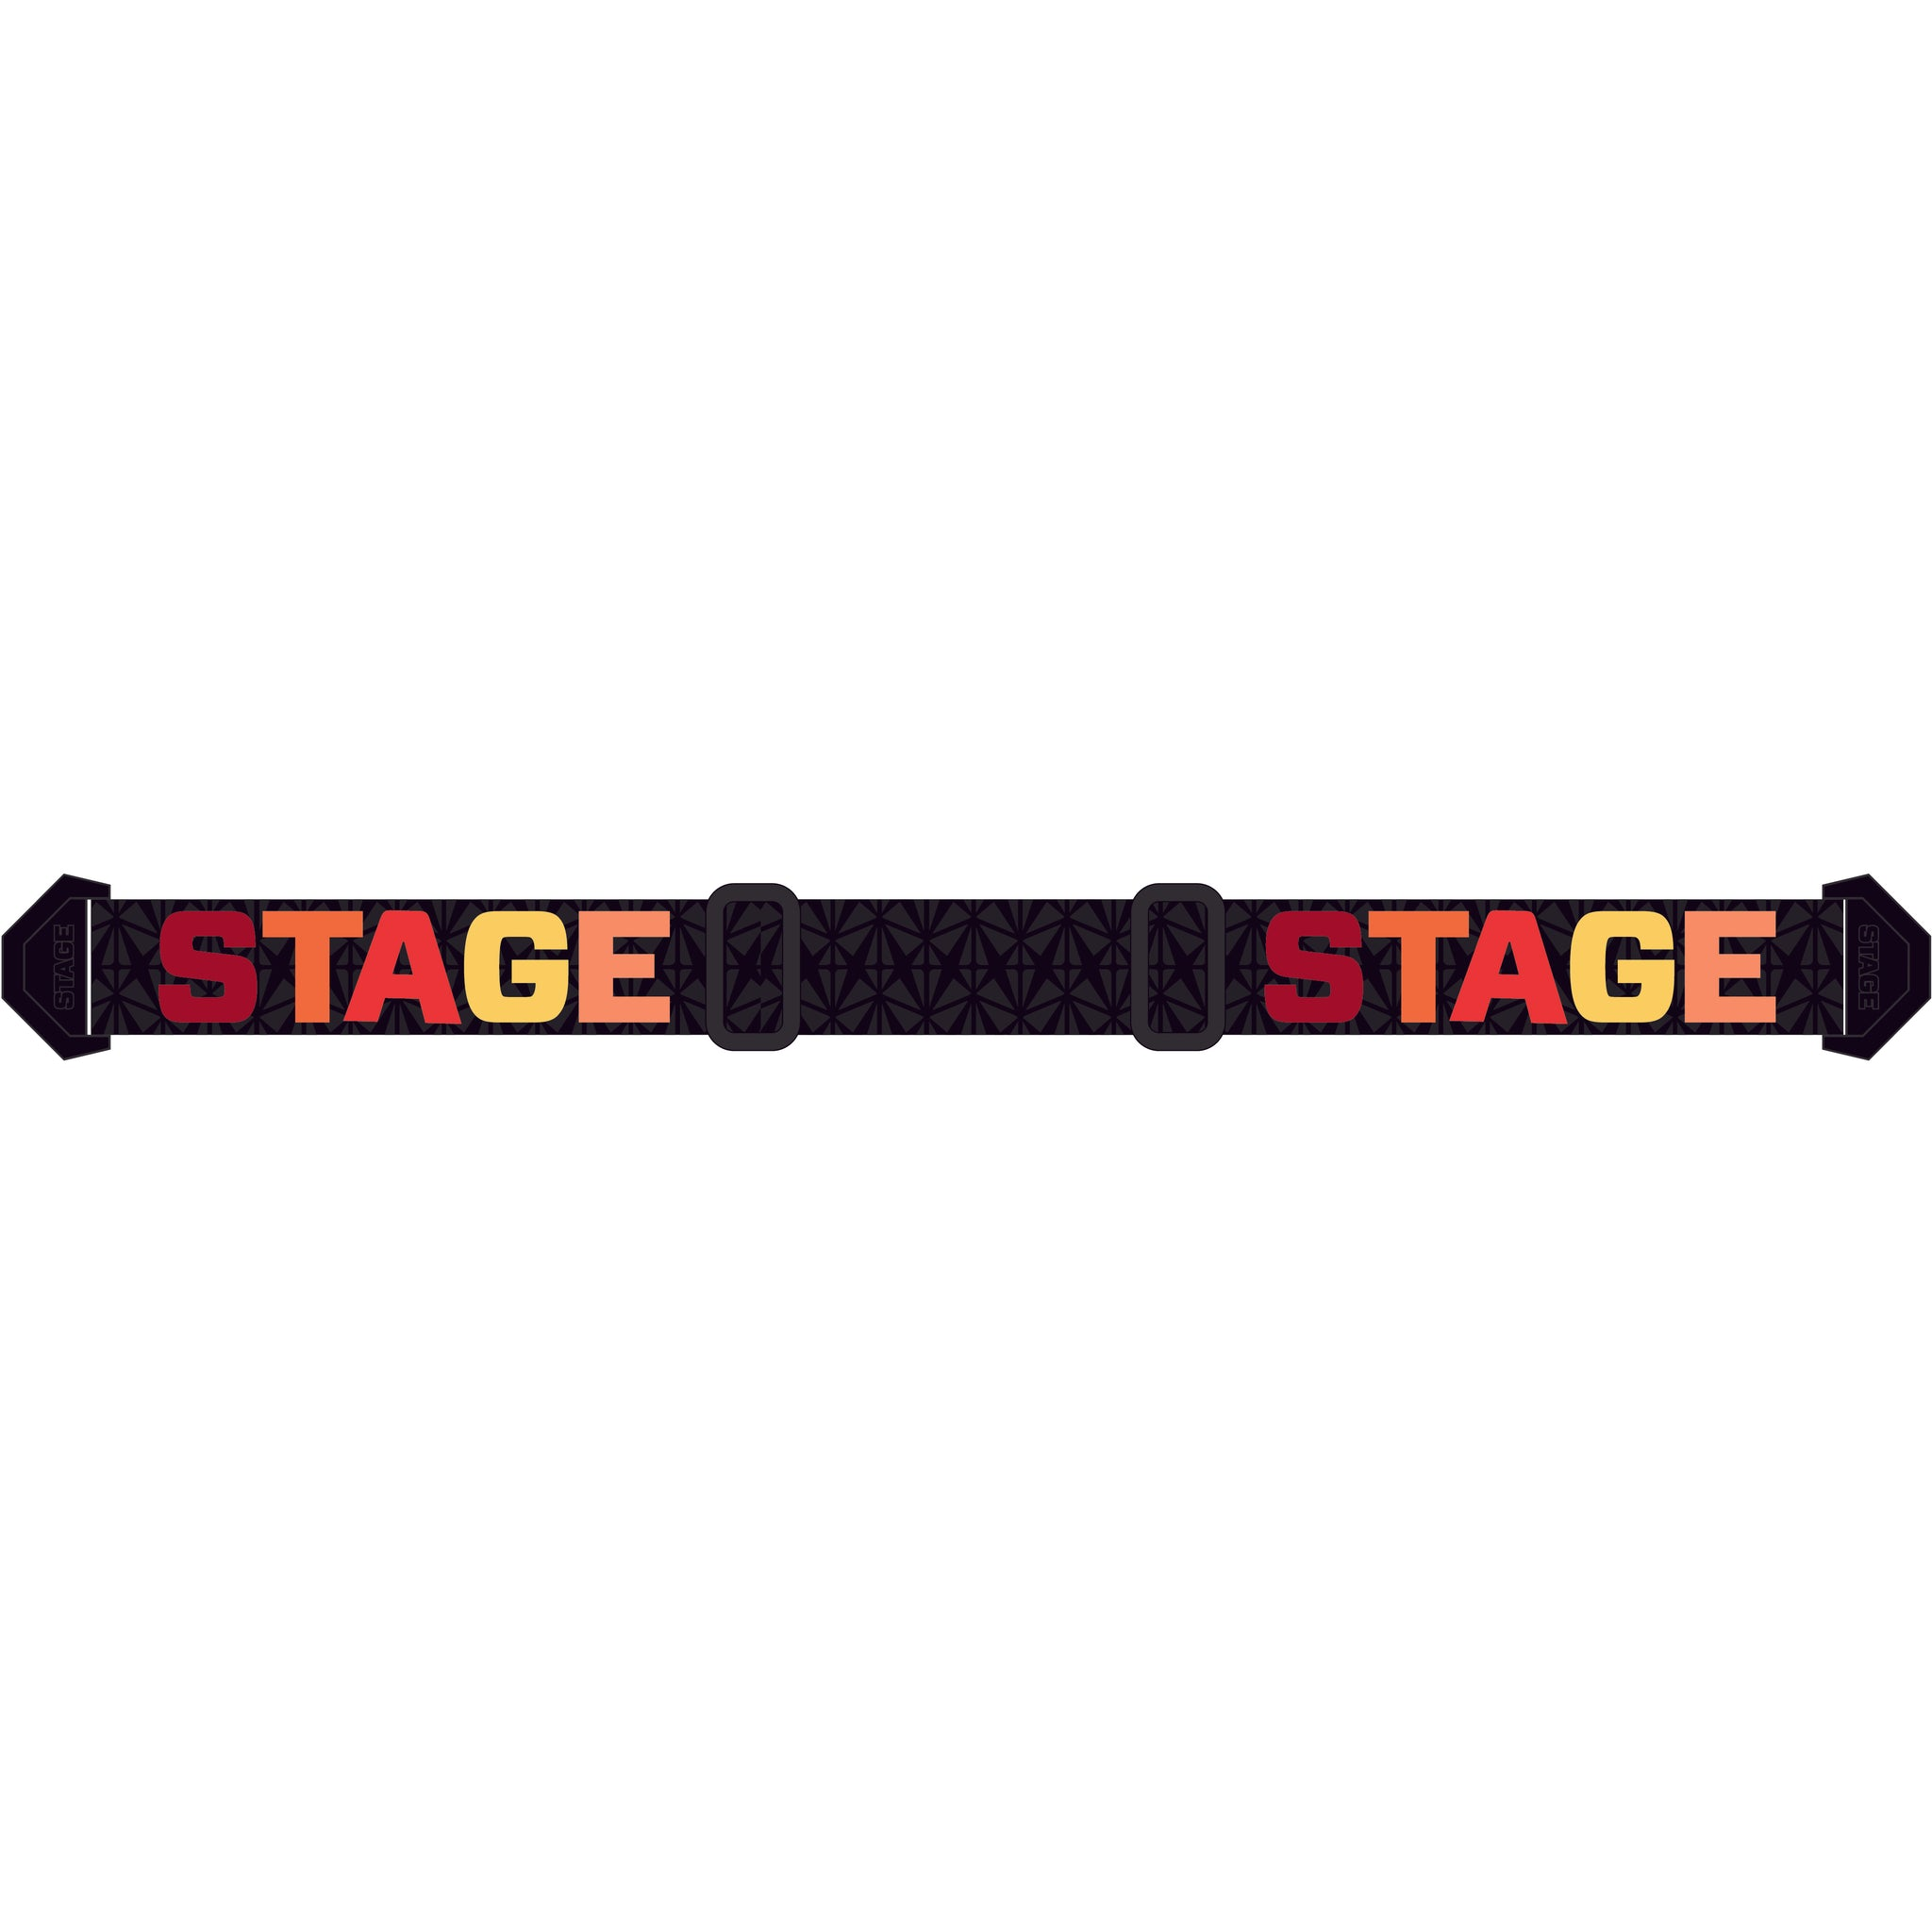 Stage Black and Hot Strap